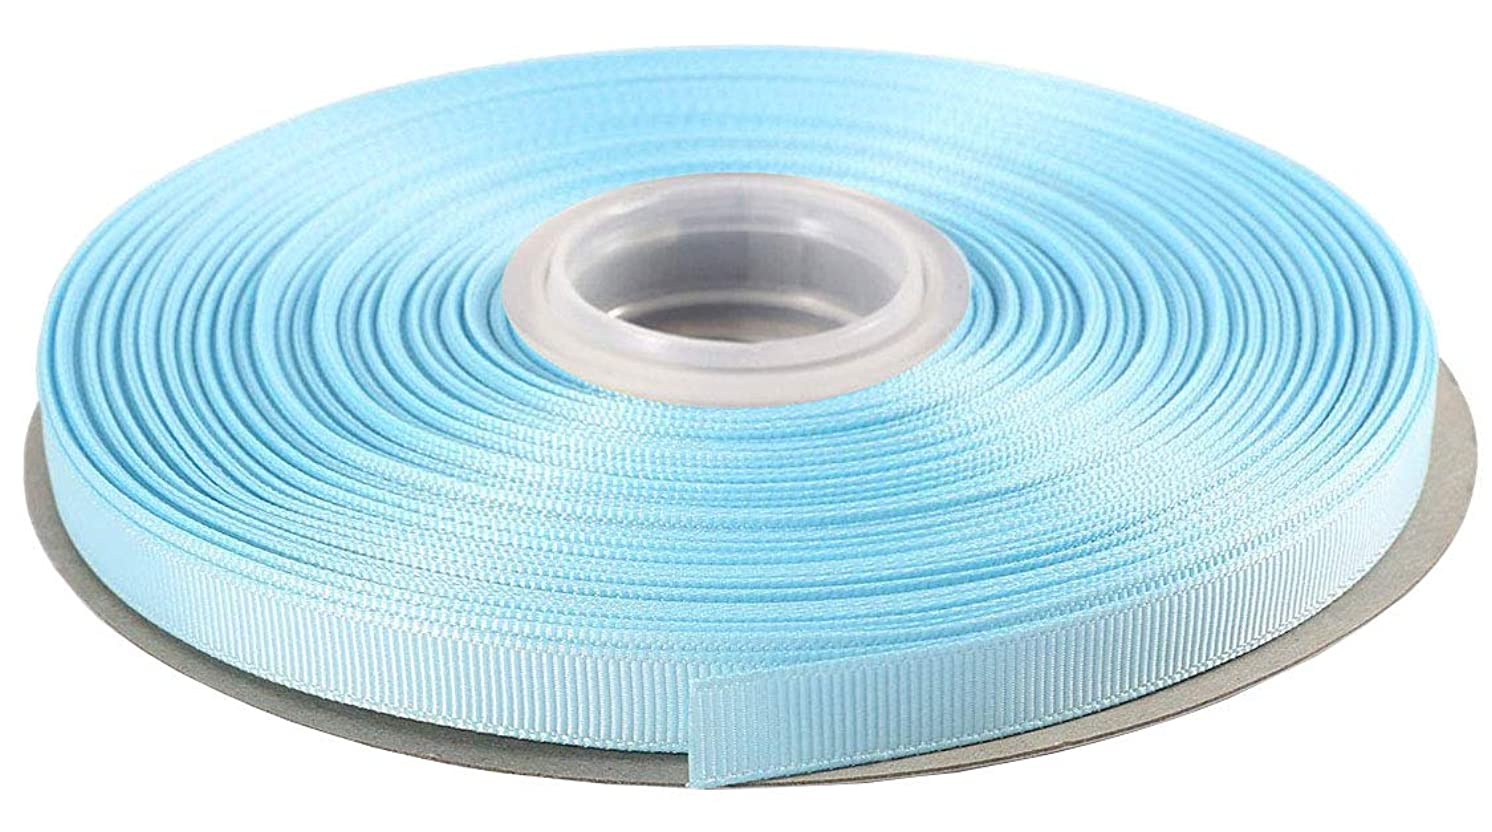 DUOQU 3/8 inch Wide Grosgrain Ribbon 50 Yards Roll Multiple Colors Light Blue